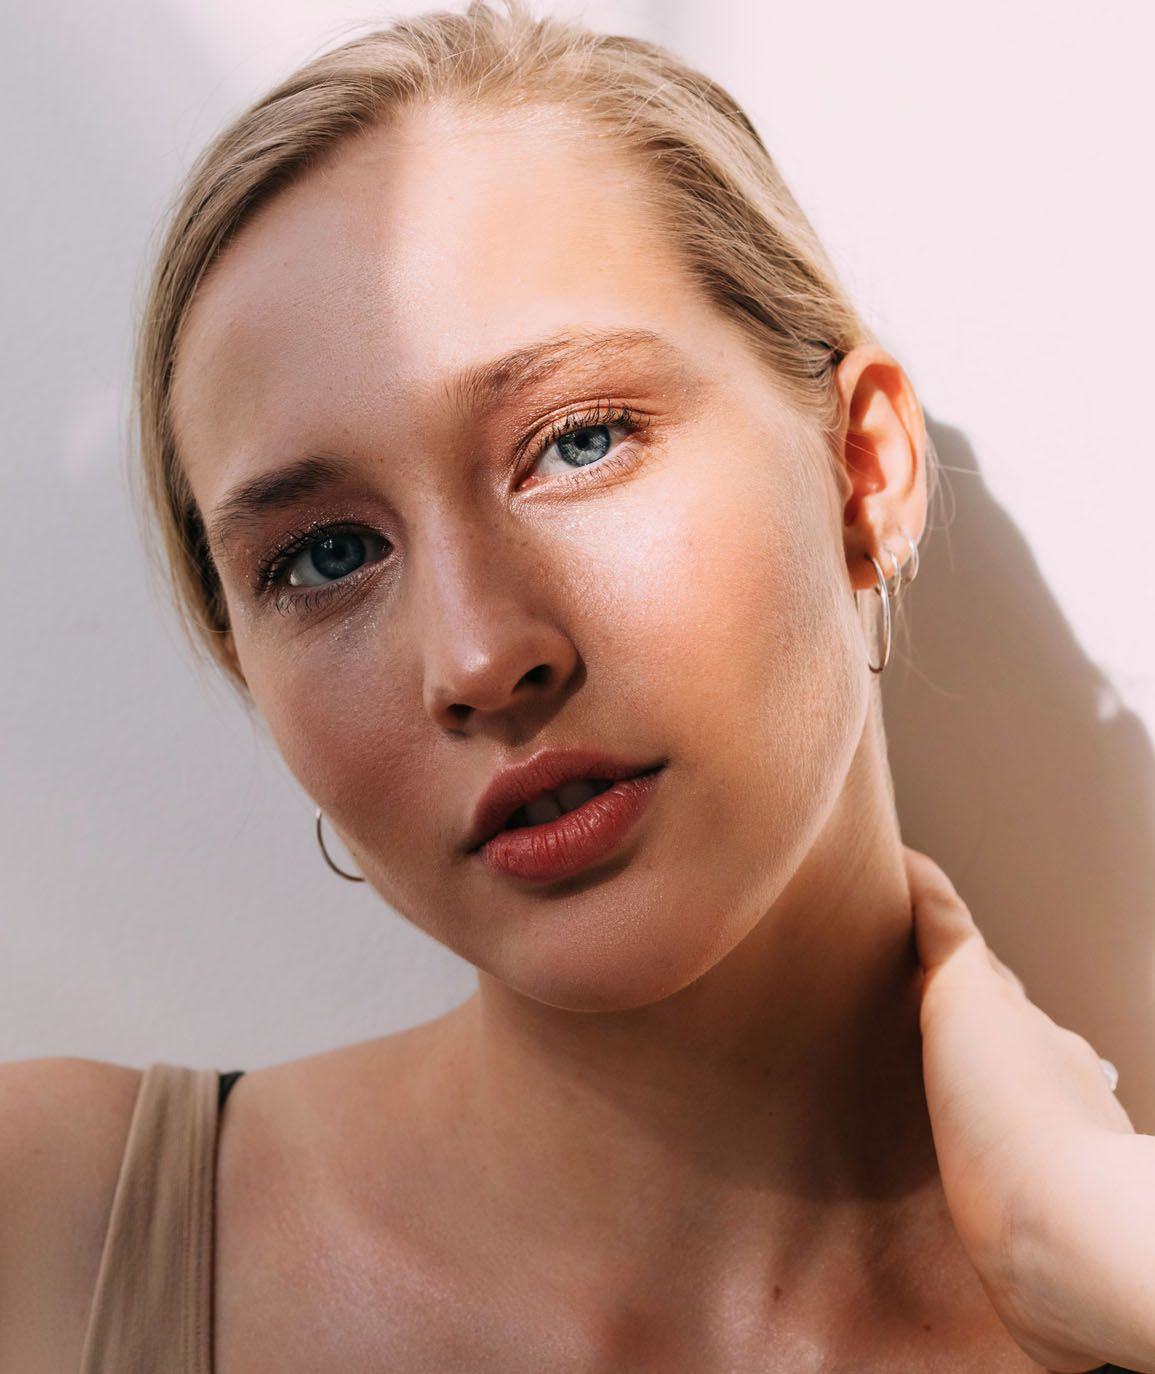 How To Reduce Redness From Acne